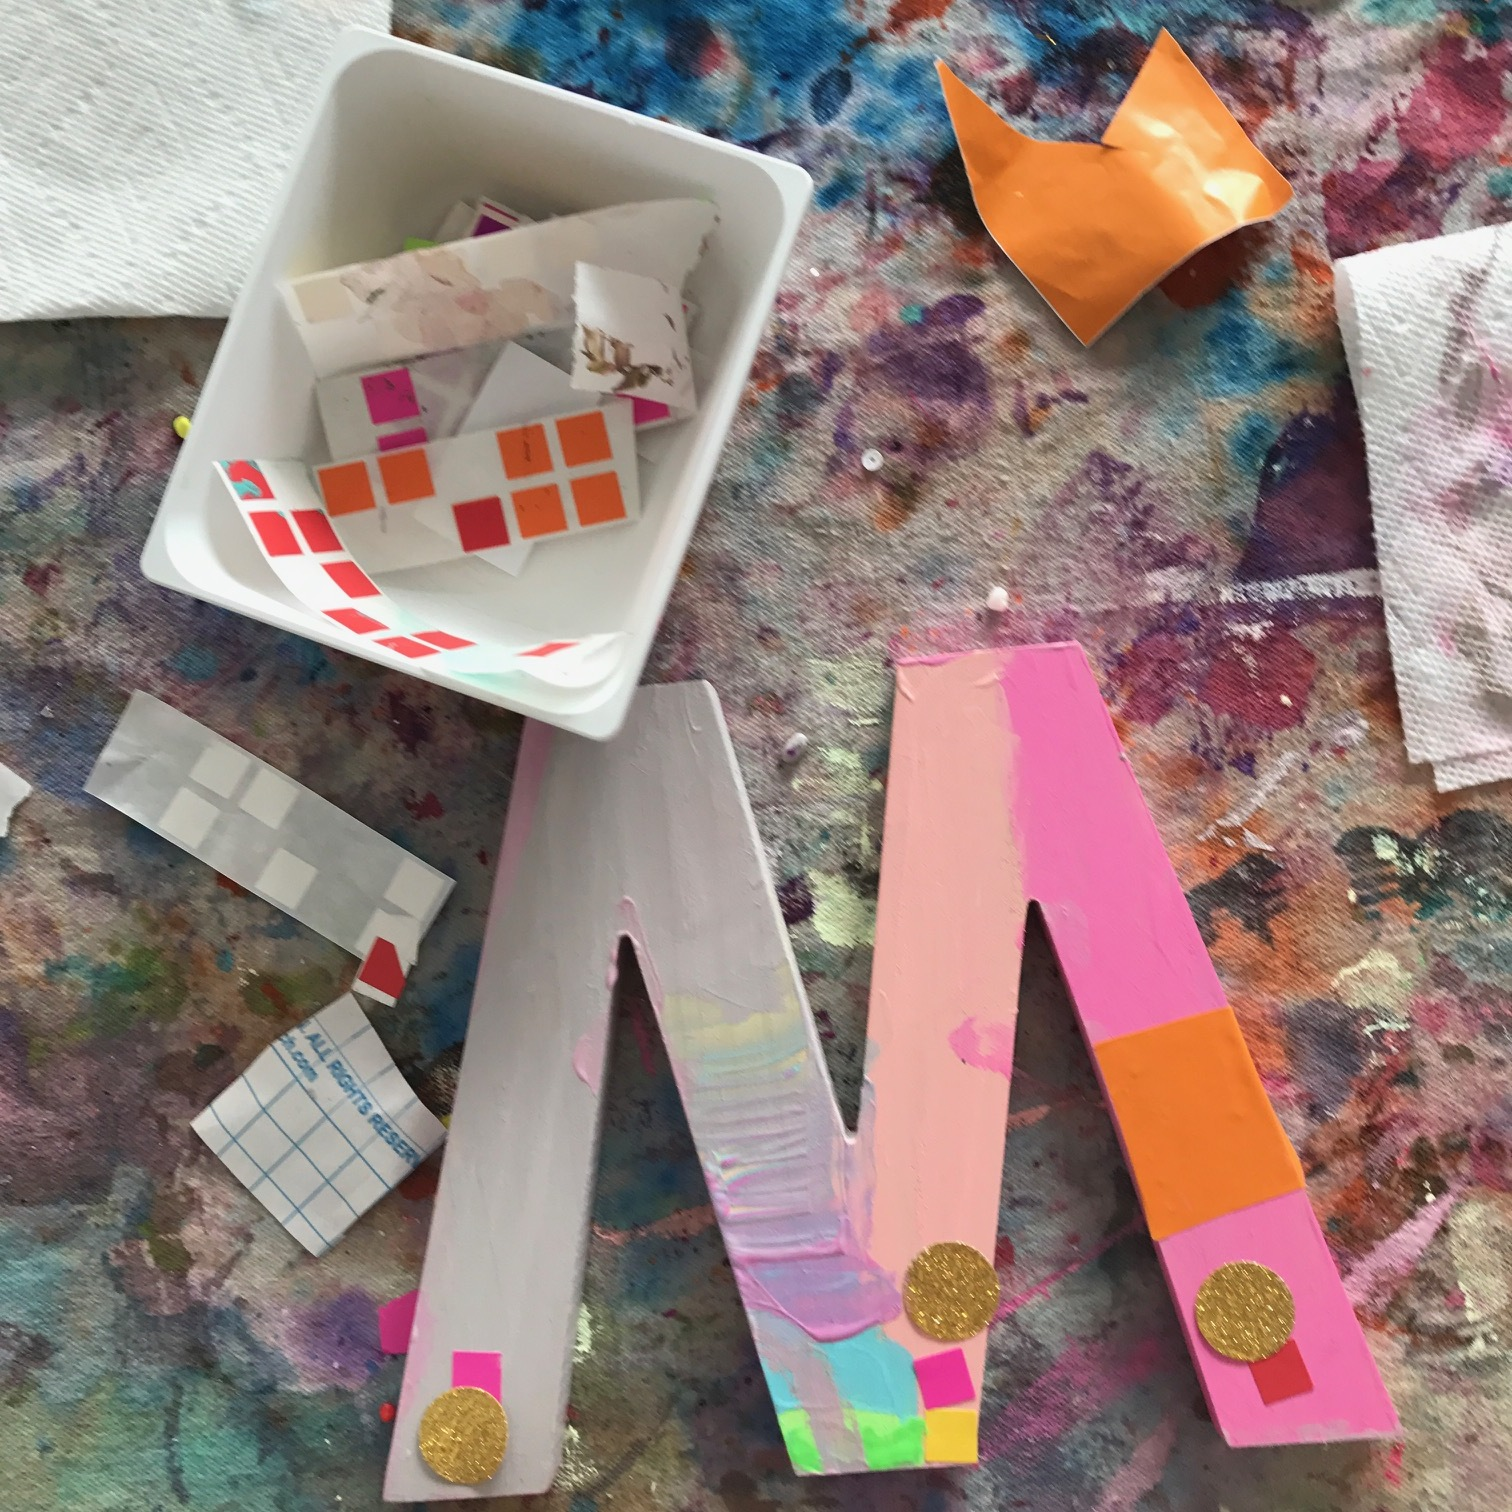 Adding stickers and color contact paper pieces